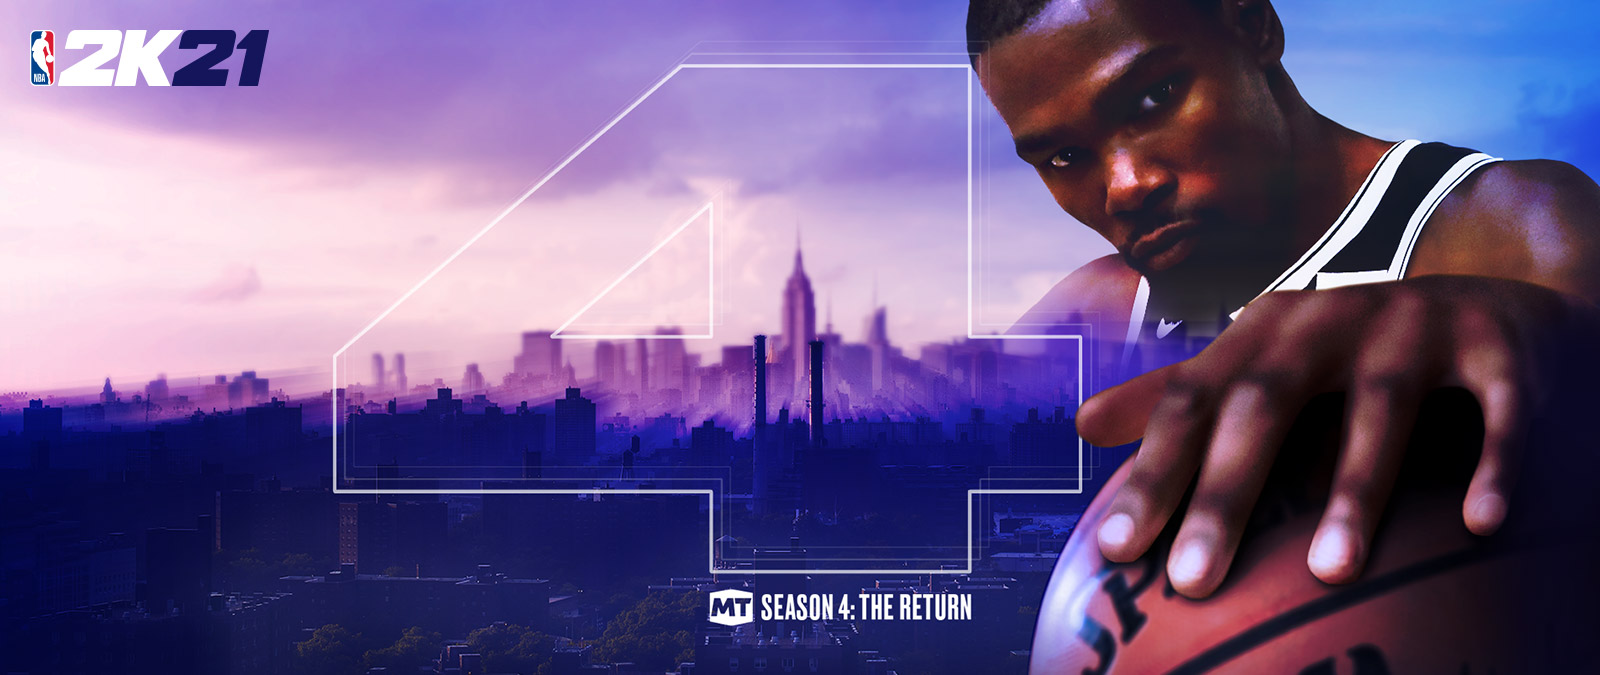 NBA 2k21, MT Season 4: The Return, Kevin Durant holds a basketball up with one hand against a cityscape background.